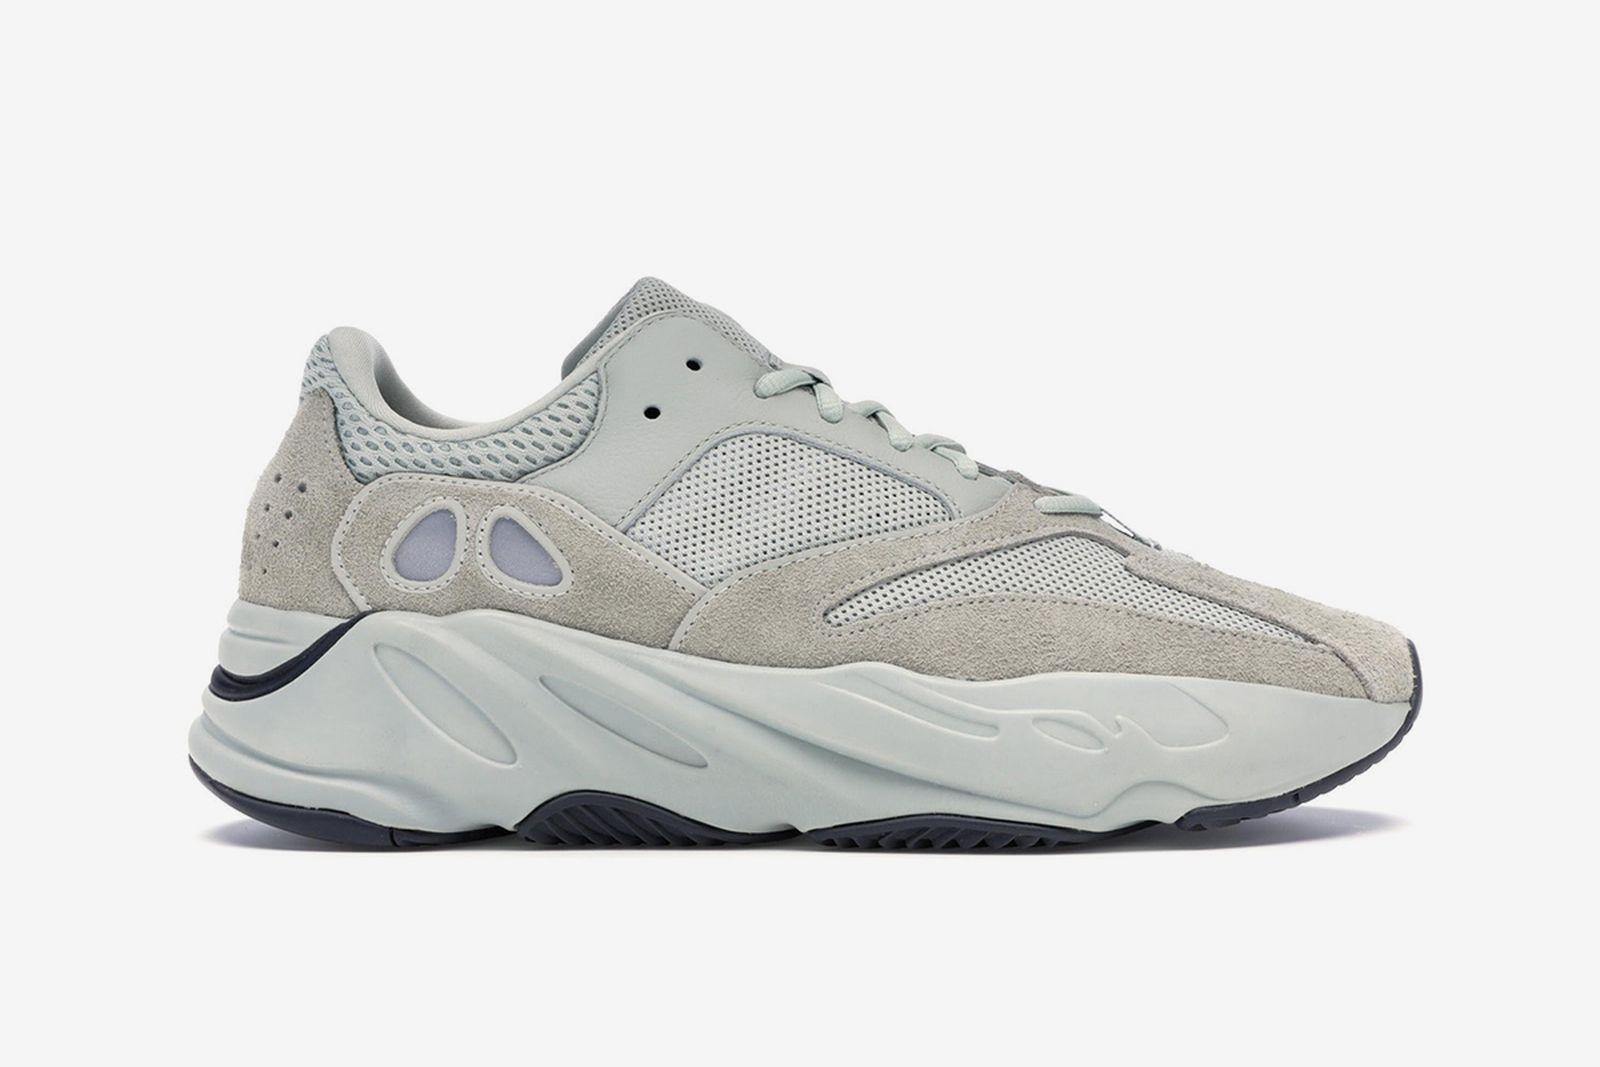 adidas yeezy guide 03 adidas yeezy guide wave runner 700 StockX Grailed adidas Originals ebay